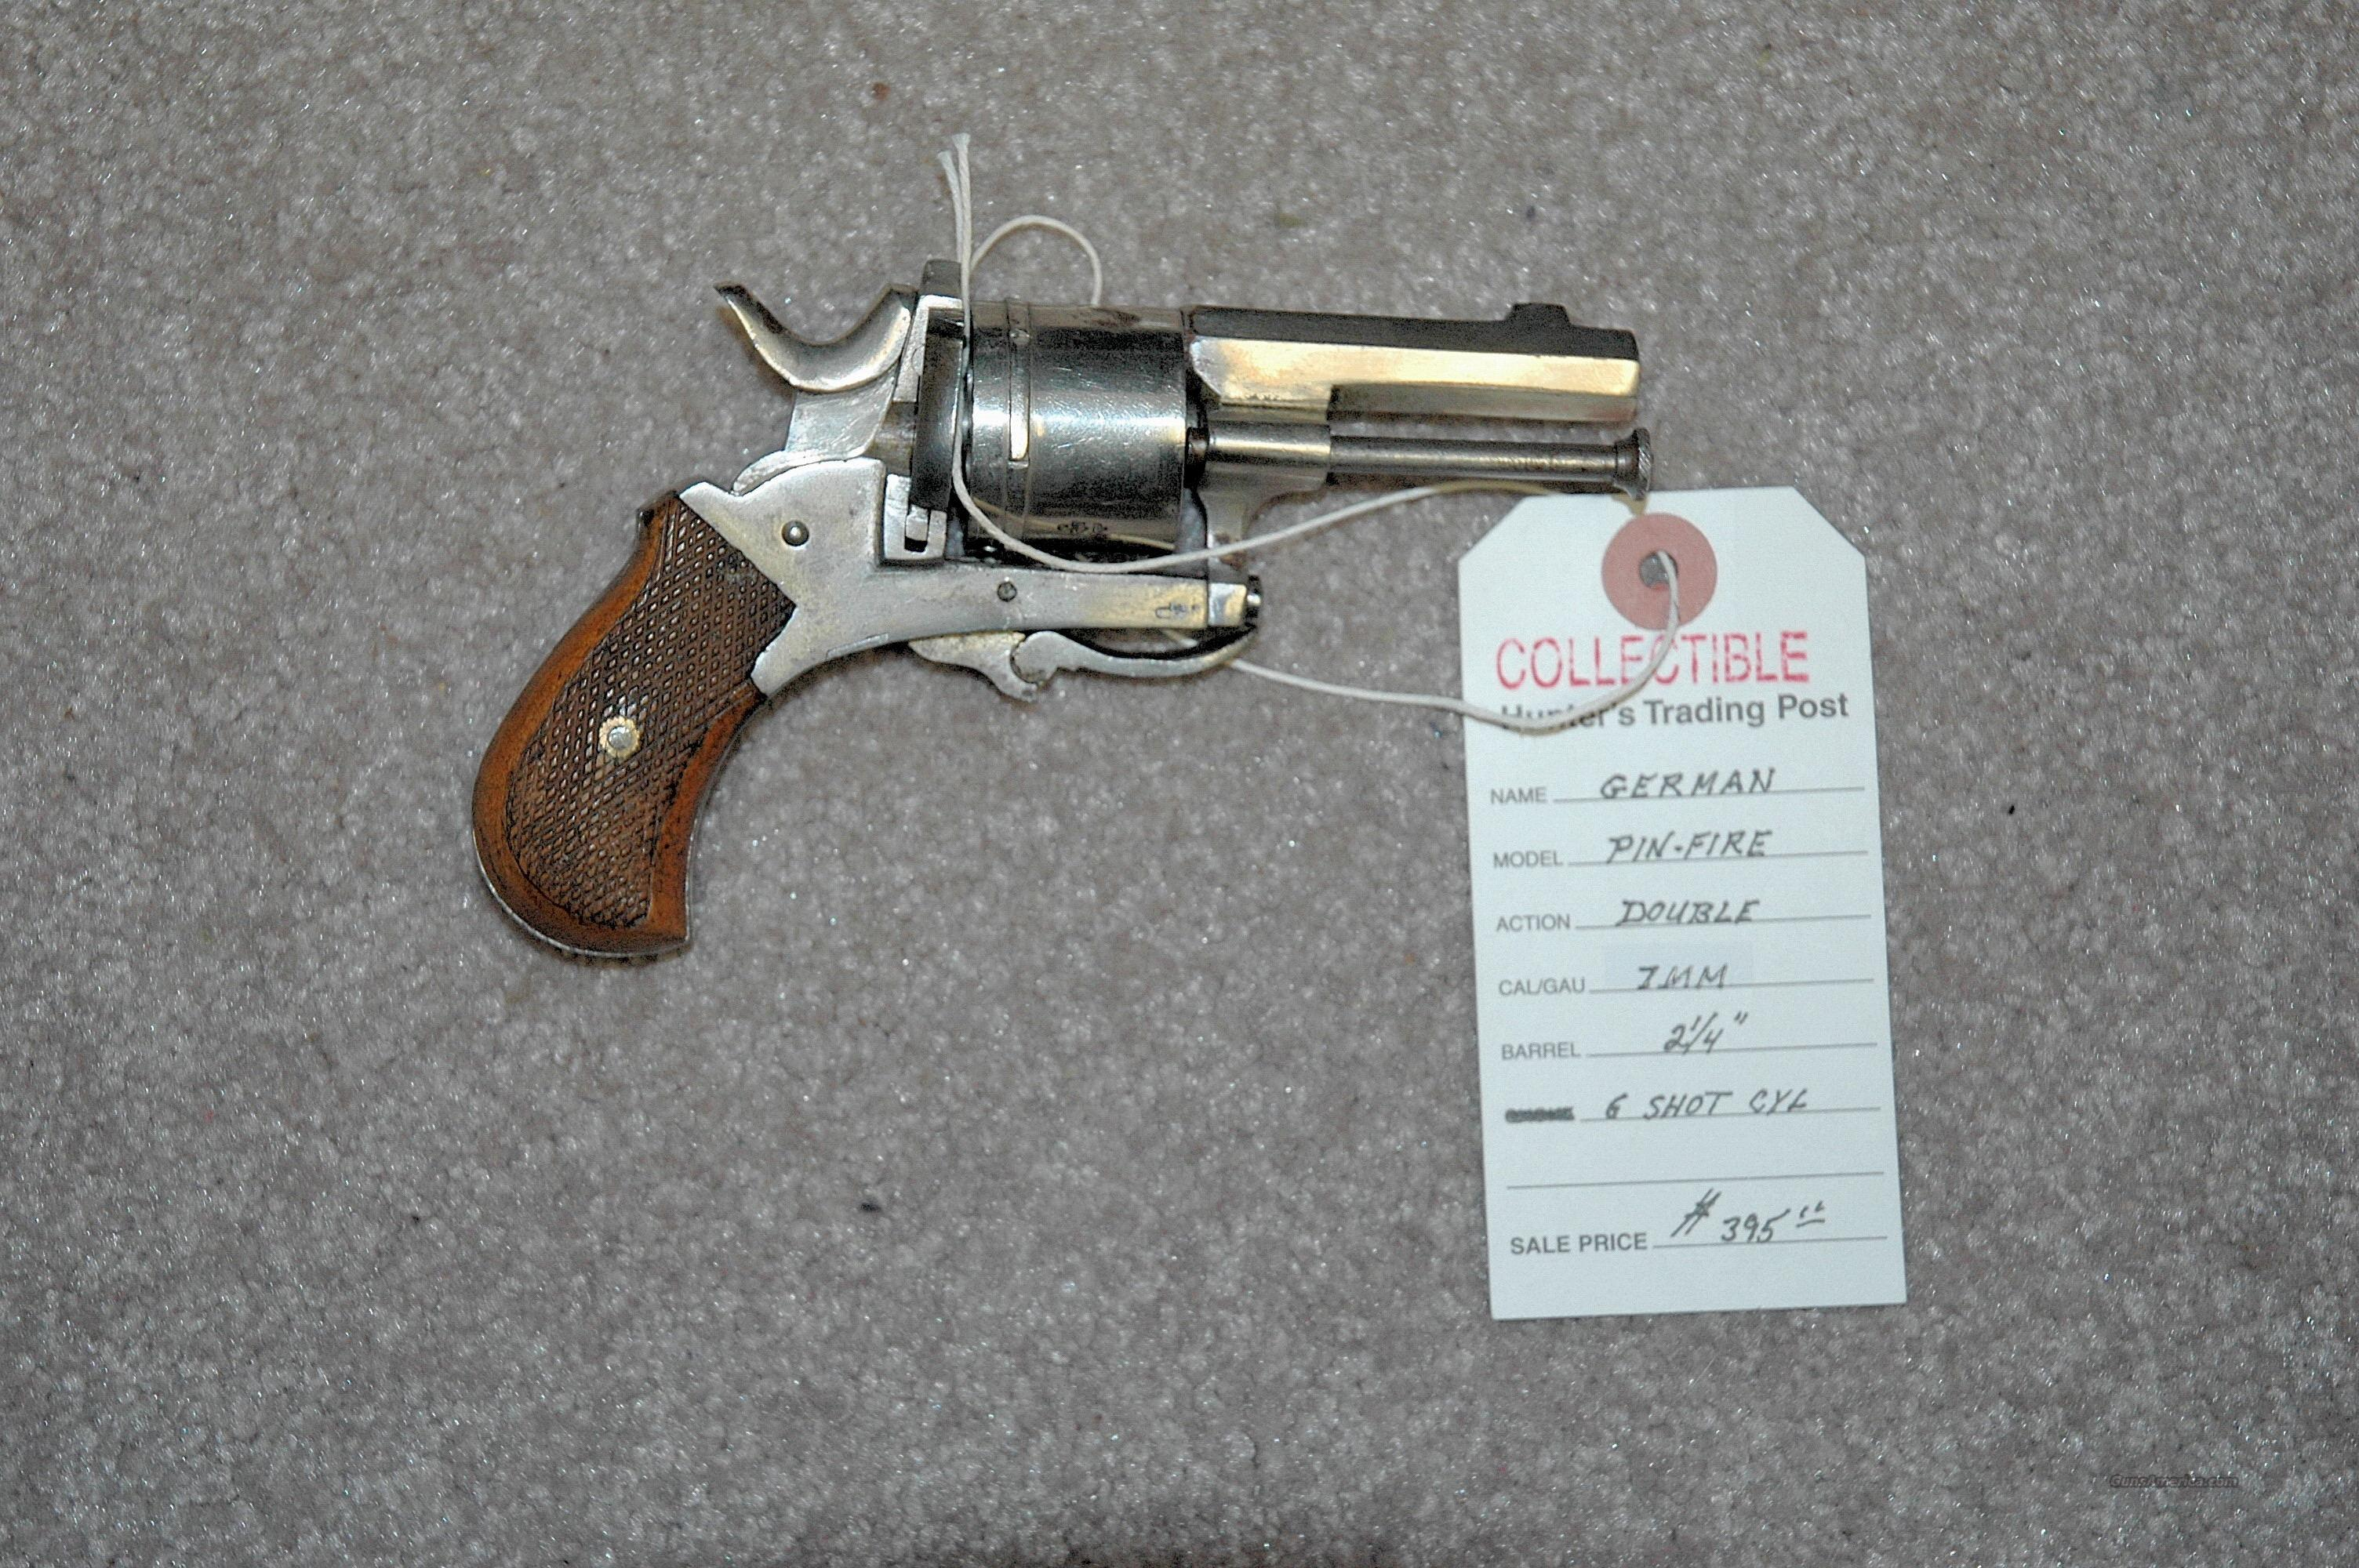 German Pin Fire Revolver 7MM